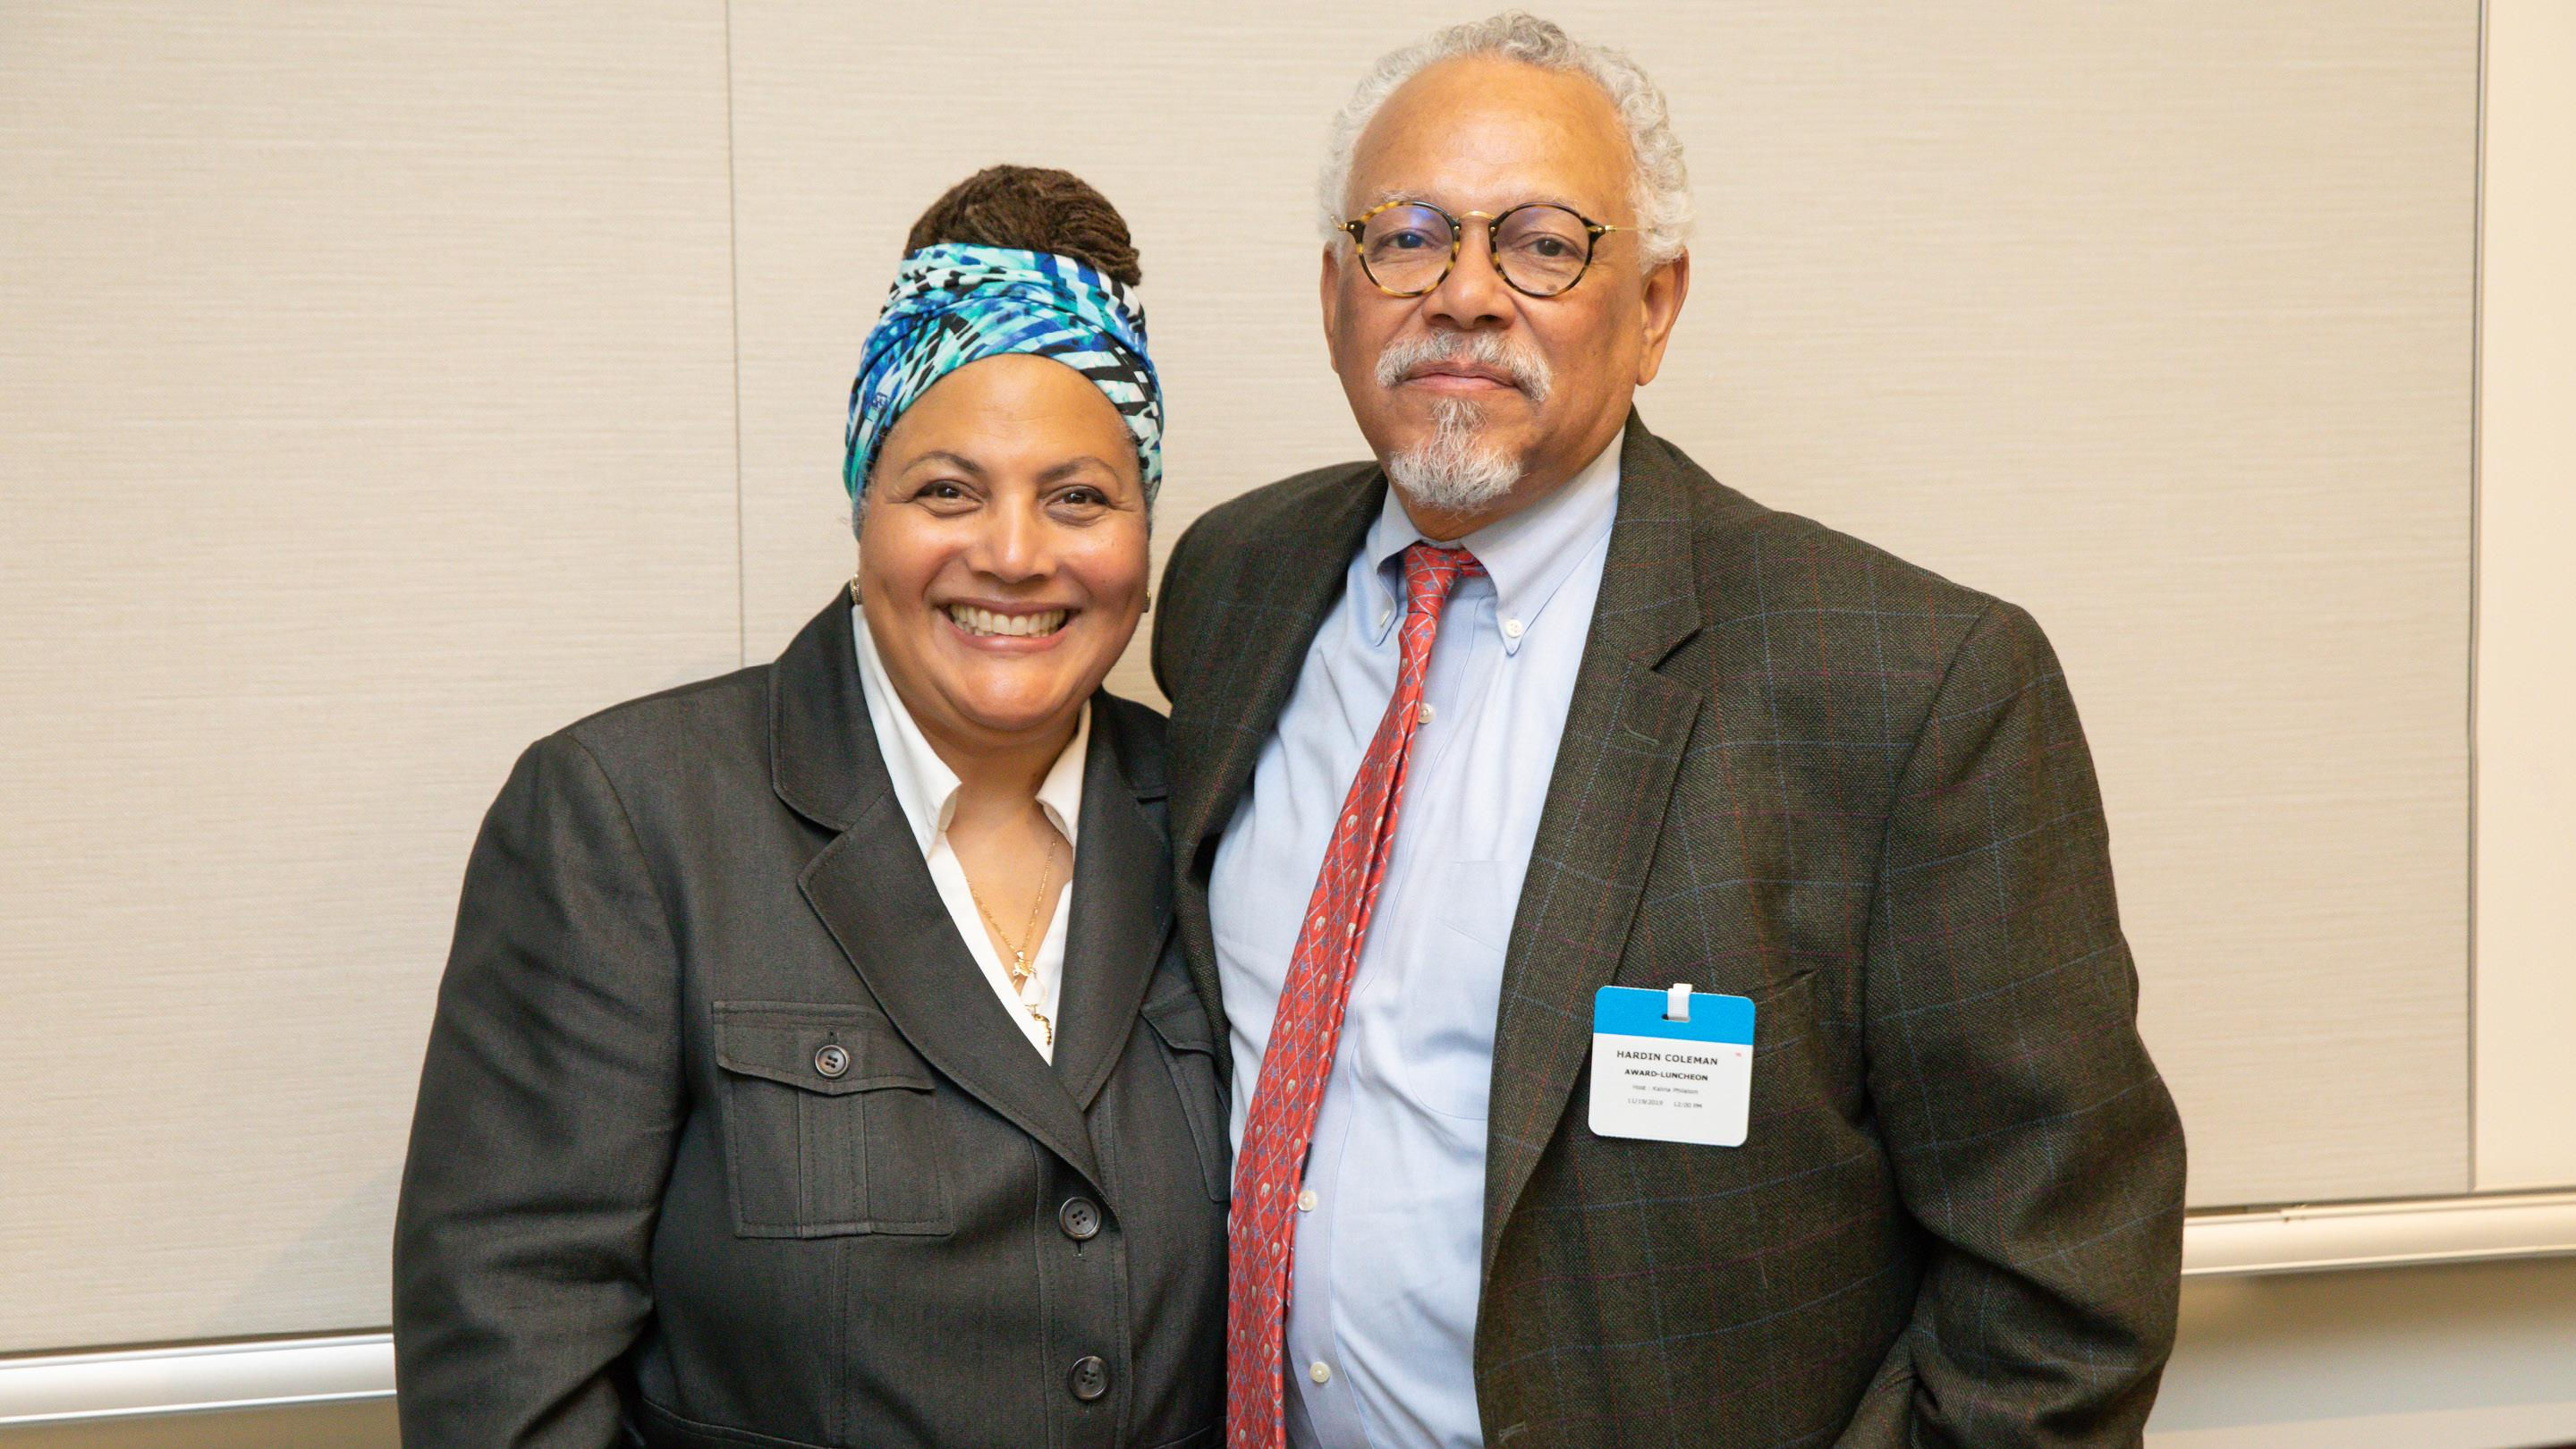 (slide 3 of 5) Image of Klare Shaw, national director of programs, Liberty Mutual Foundation and Dr. Hardin Coleman, dean emeritus and professor of counseling and applied human development, Boston University.